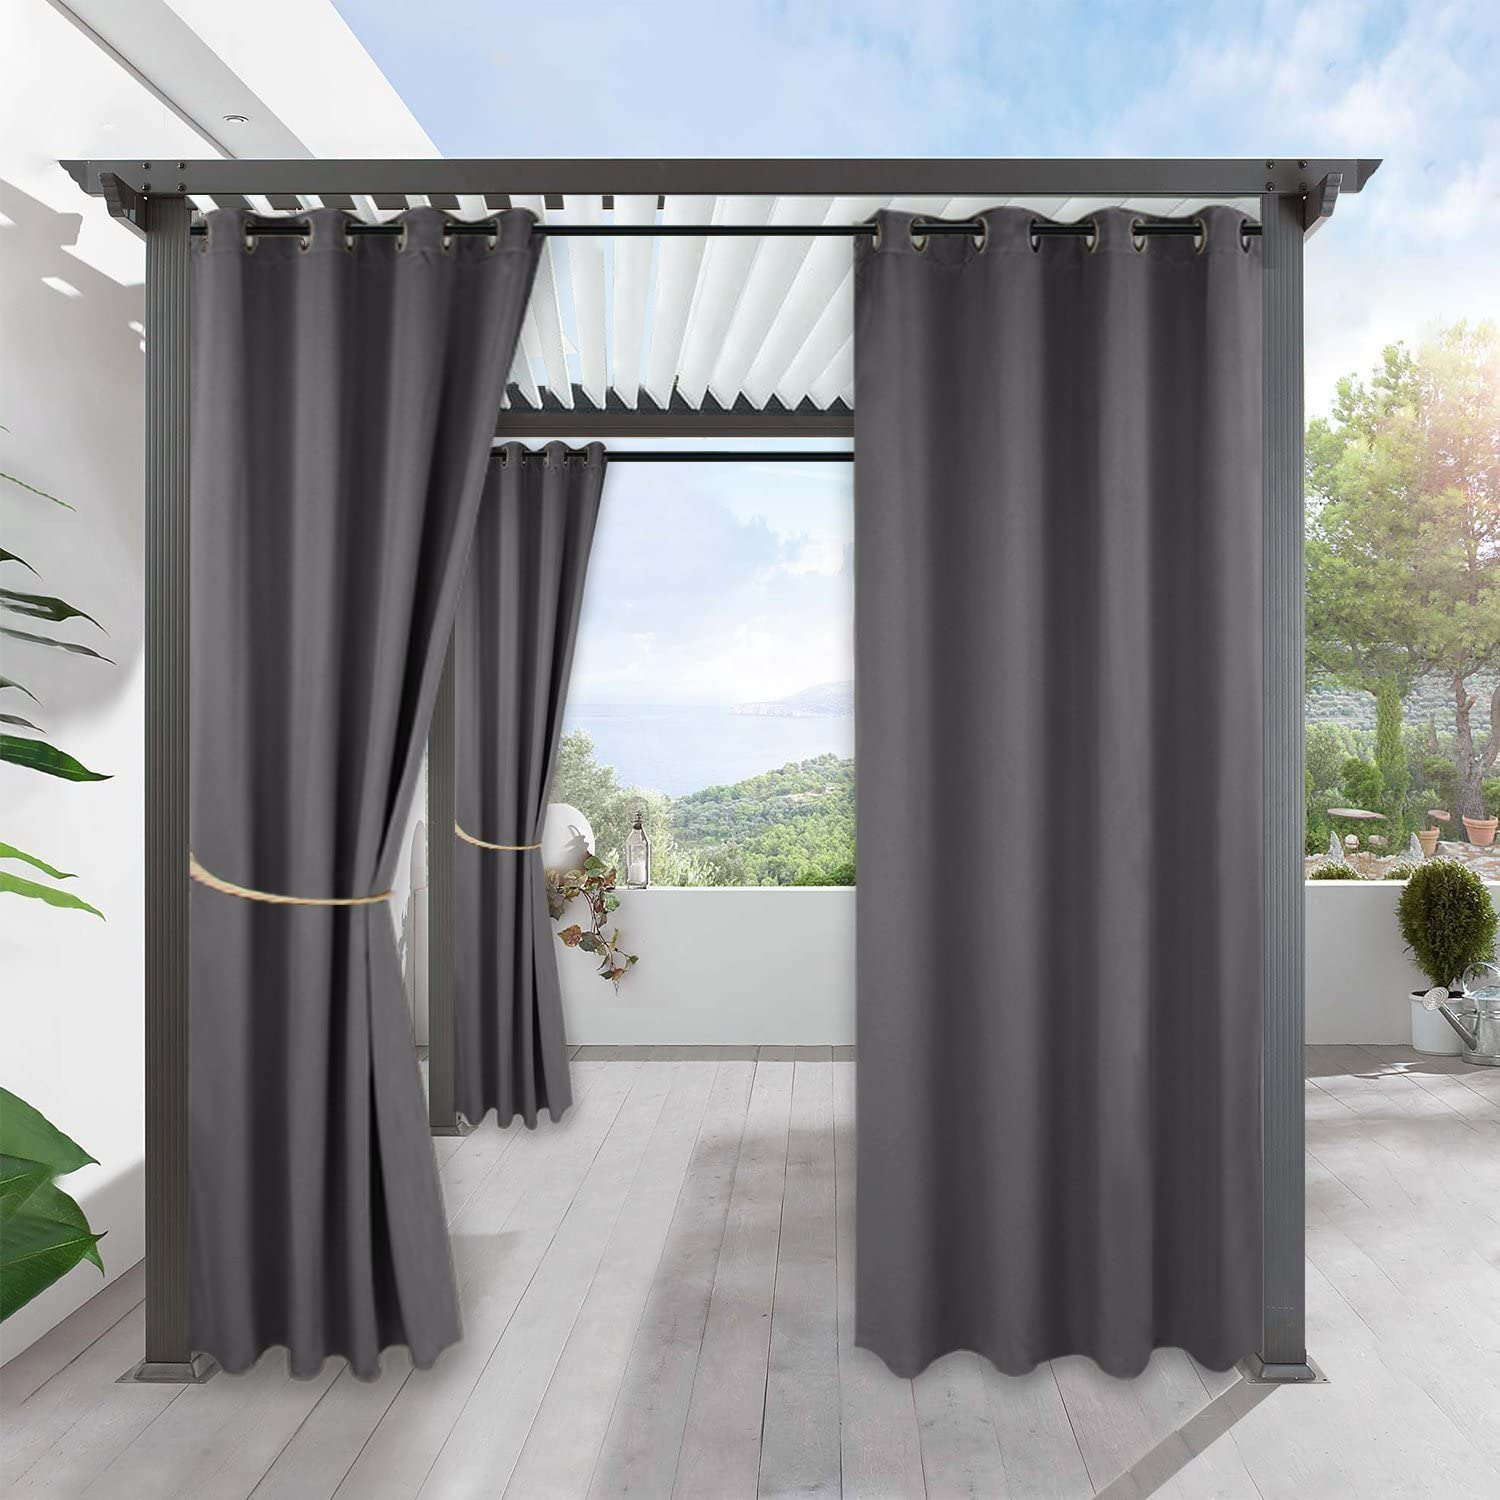 RYB HOME Weatherproof Outdoor Curtain - Indoor Outdoor Patio Curtain Drape Grommet Curtains Waterproof & Windproof Privacy Drapes for Front Door Pergola Gazebo, 1 Panel, Wide 52 x Long 84 inch, Grey